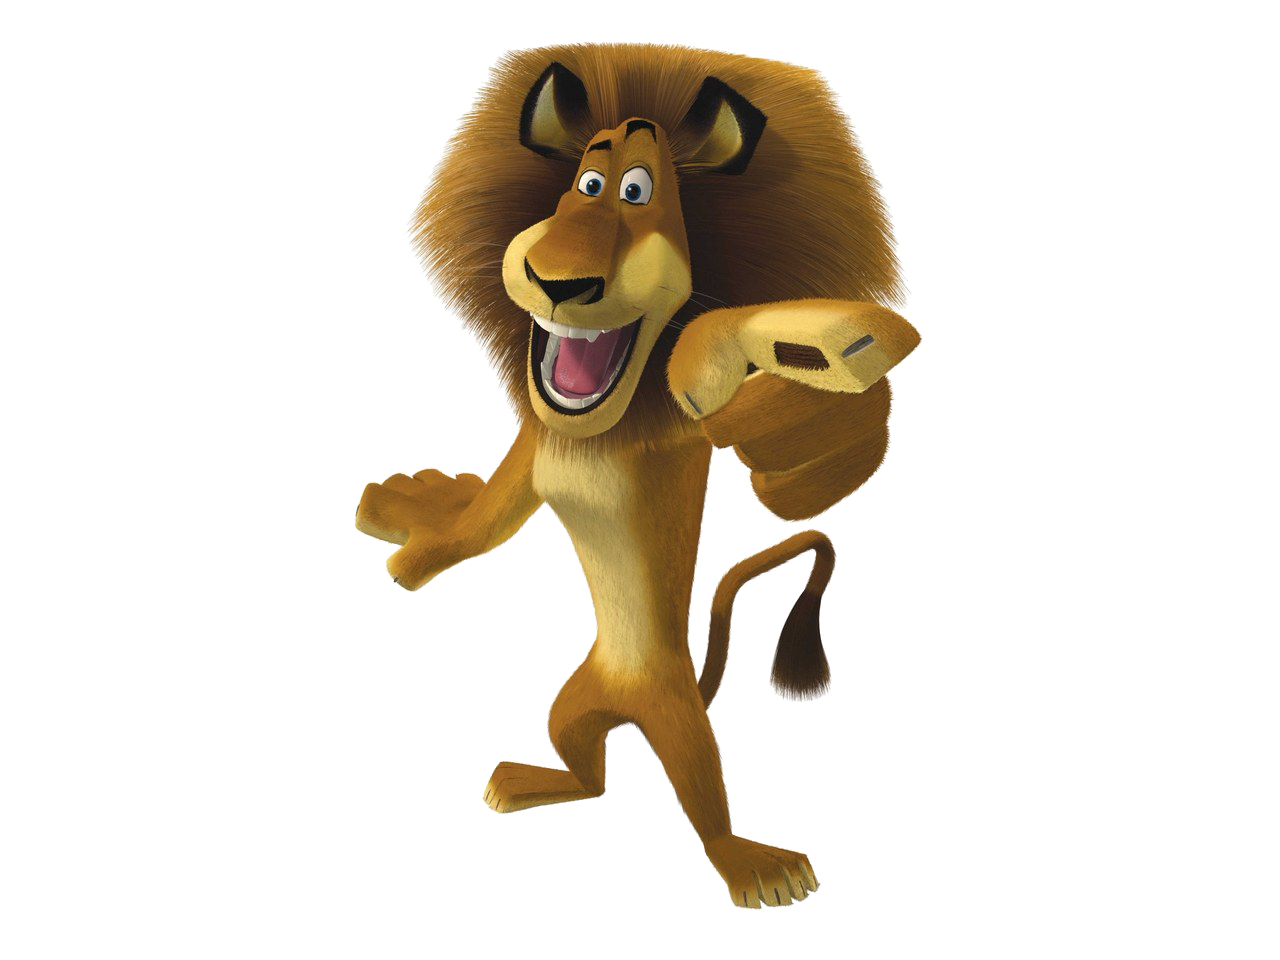 Madagascar 2 Cartoon Characters : Cartoon characters madagascar